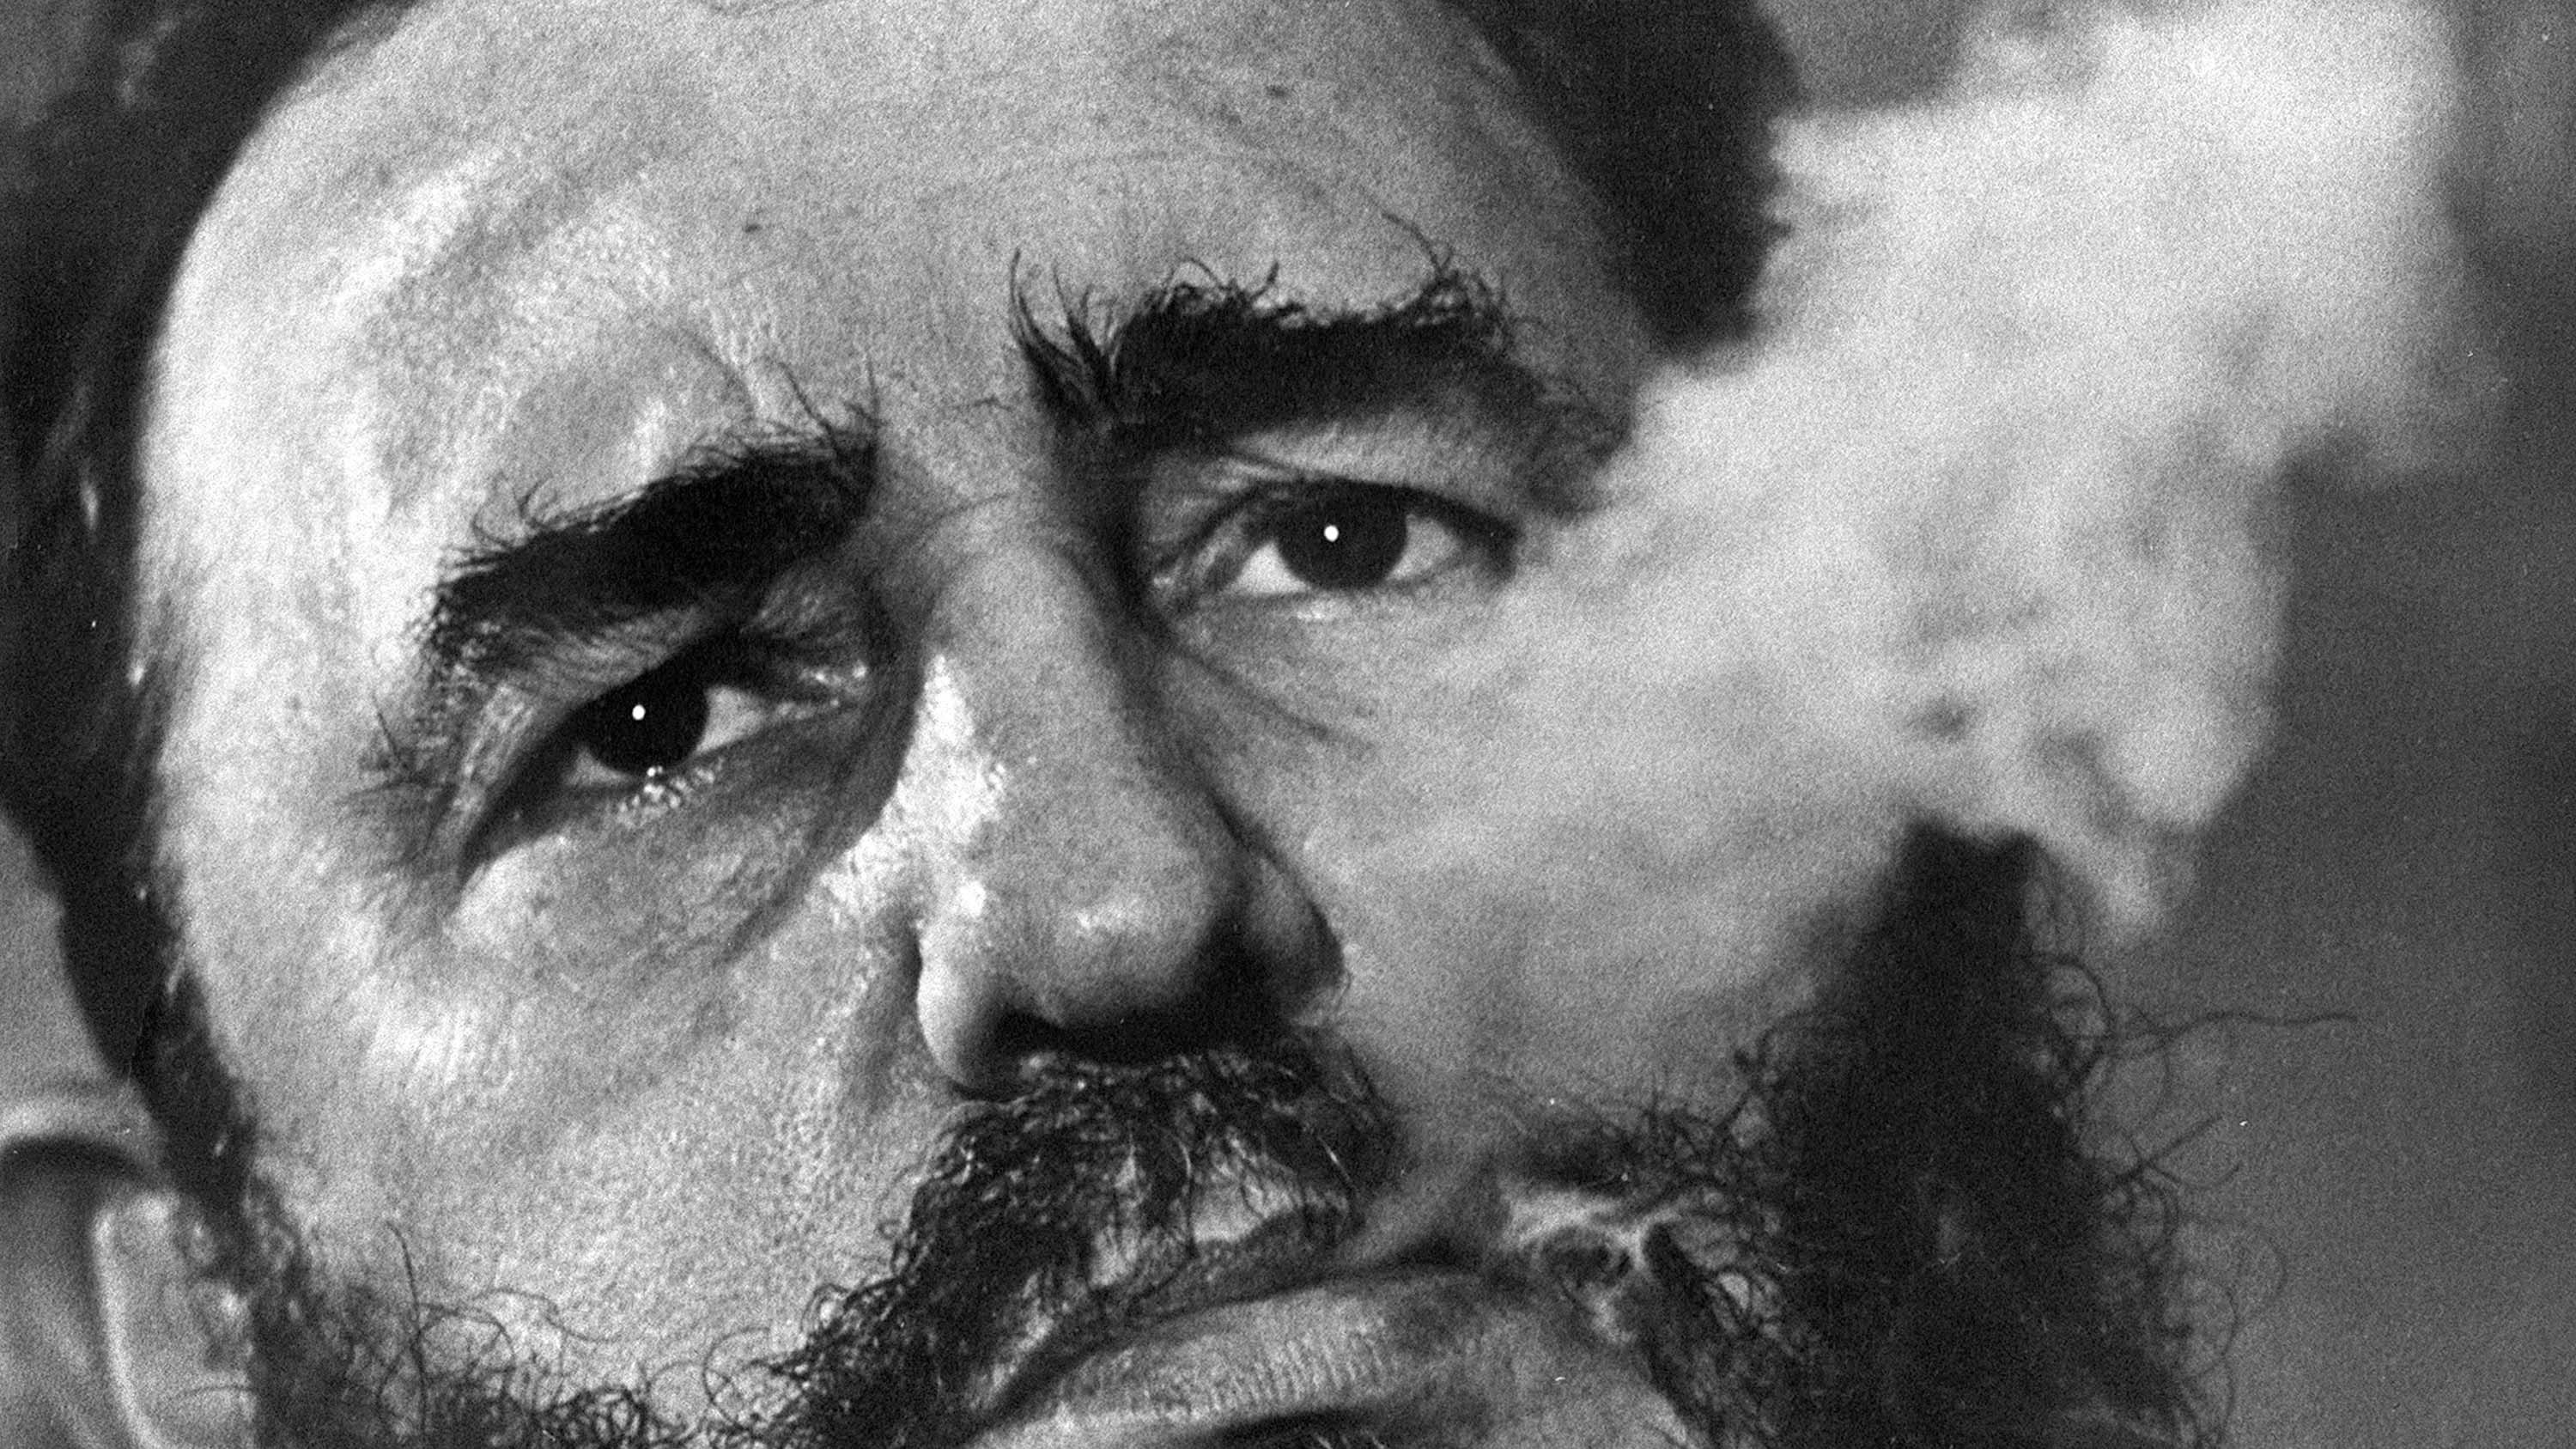 FILE - In this March 1985 file photo, Cuban Prime Minister Fidel Castro exhales cigar smoke during an interview at his presidential palace in Havana, Cuba. Castro, a Havana attorney who fought for the poor, overthrew dictator Fulgencio Batista's government on Jan. 1, 1959. As Castro turns 90 on Aug. 13, 2016, it's an uncertain time, with no settled consensus around his legacy. The government and its backers laud Castro's nationalism and his construction of a social safety net that provided free housing, education and health care to every Cuban. Less is said about decades of economic stewardship that, along with a U.S. trade embargo, has left Cuba's infrastructure and its economy cash-strapped and still dependent on billions in aid from abroad.